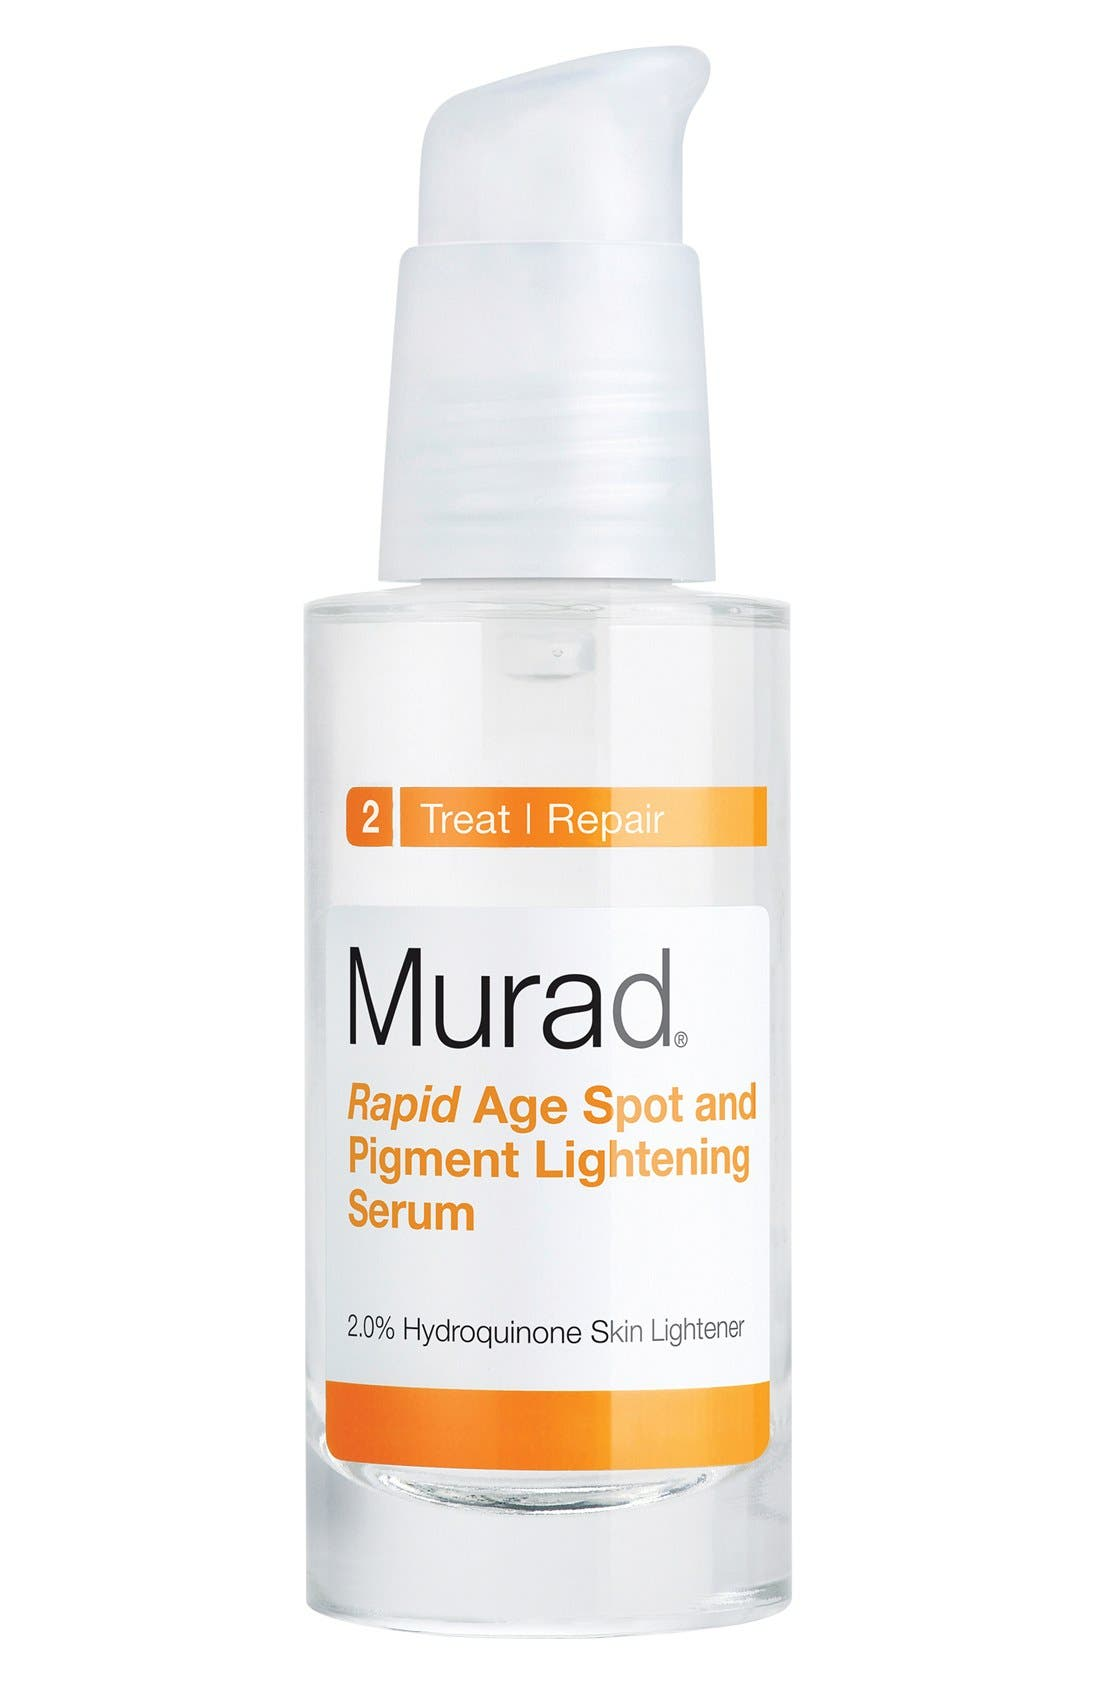 Murad® Rapid Age Spot & Pigment Lightening Serum